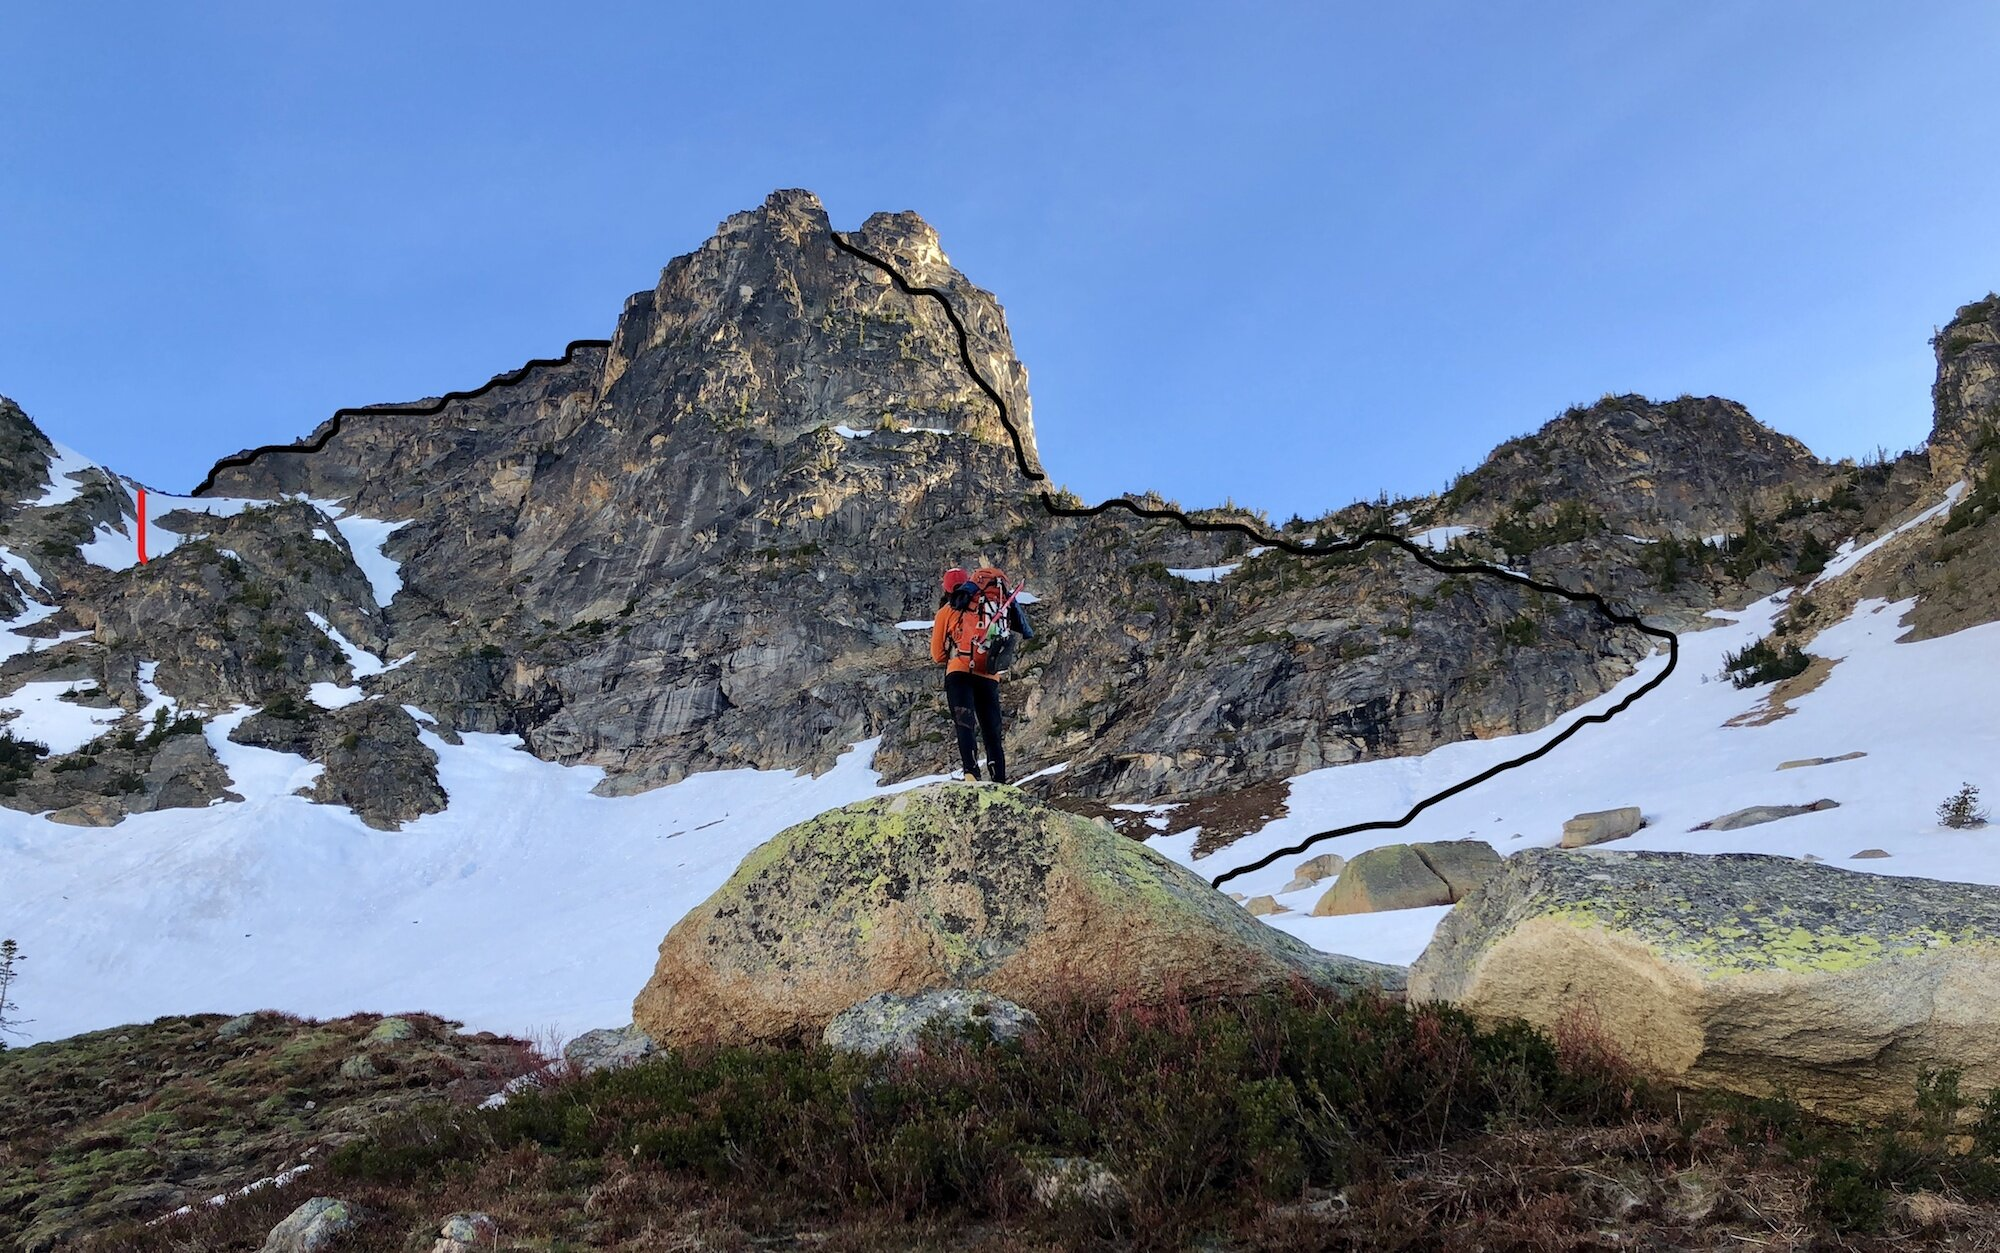 Looking up at Cutthroat Peak during the approach to the south ridge. The black lines mark the climb (right) and the initial descent. The red line on far left marks the snow slope where the fall occurred.